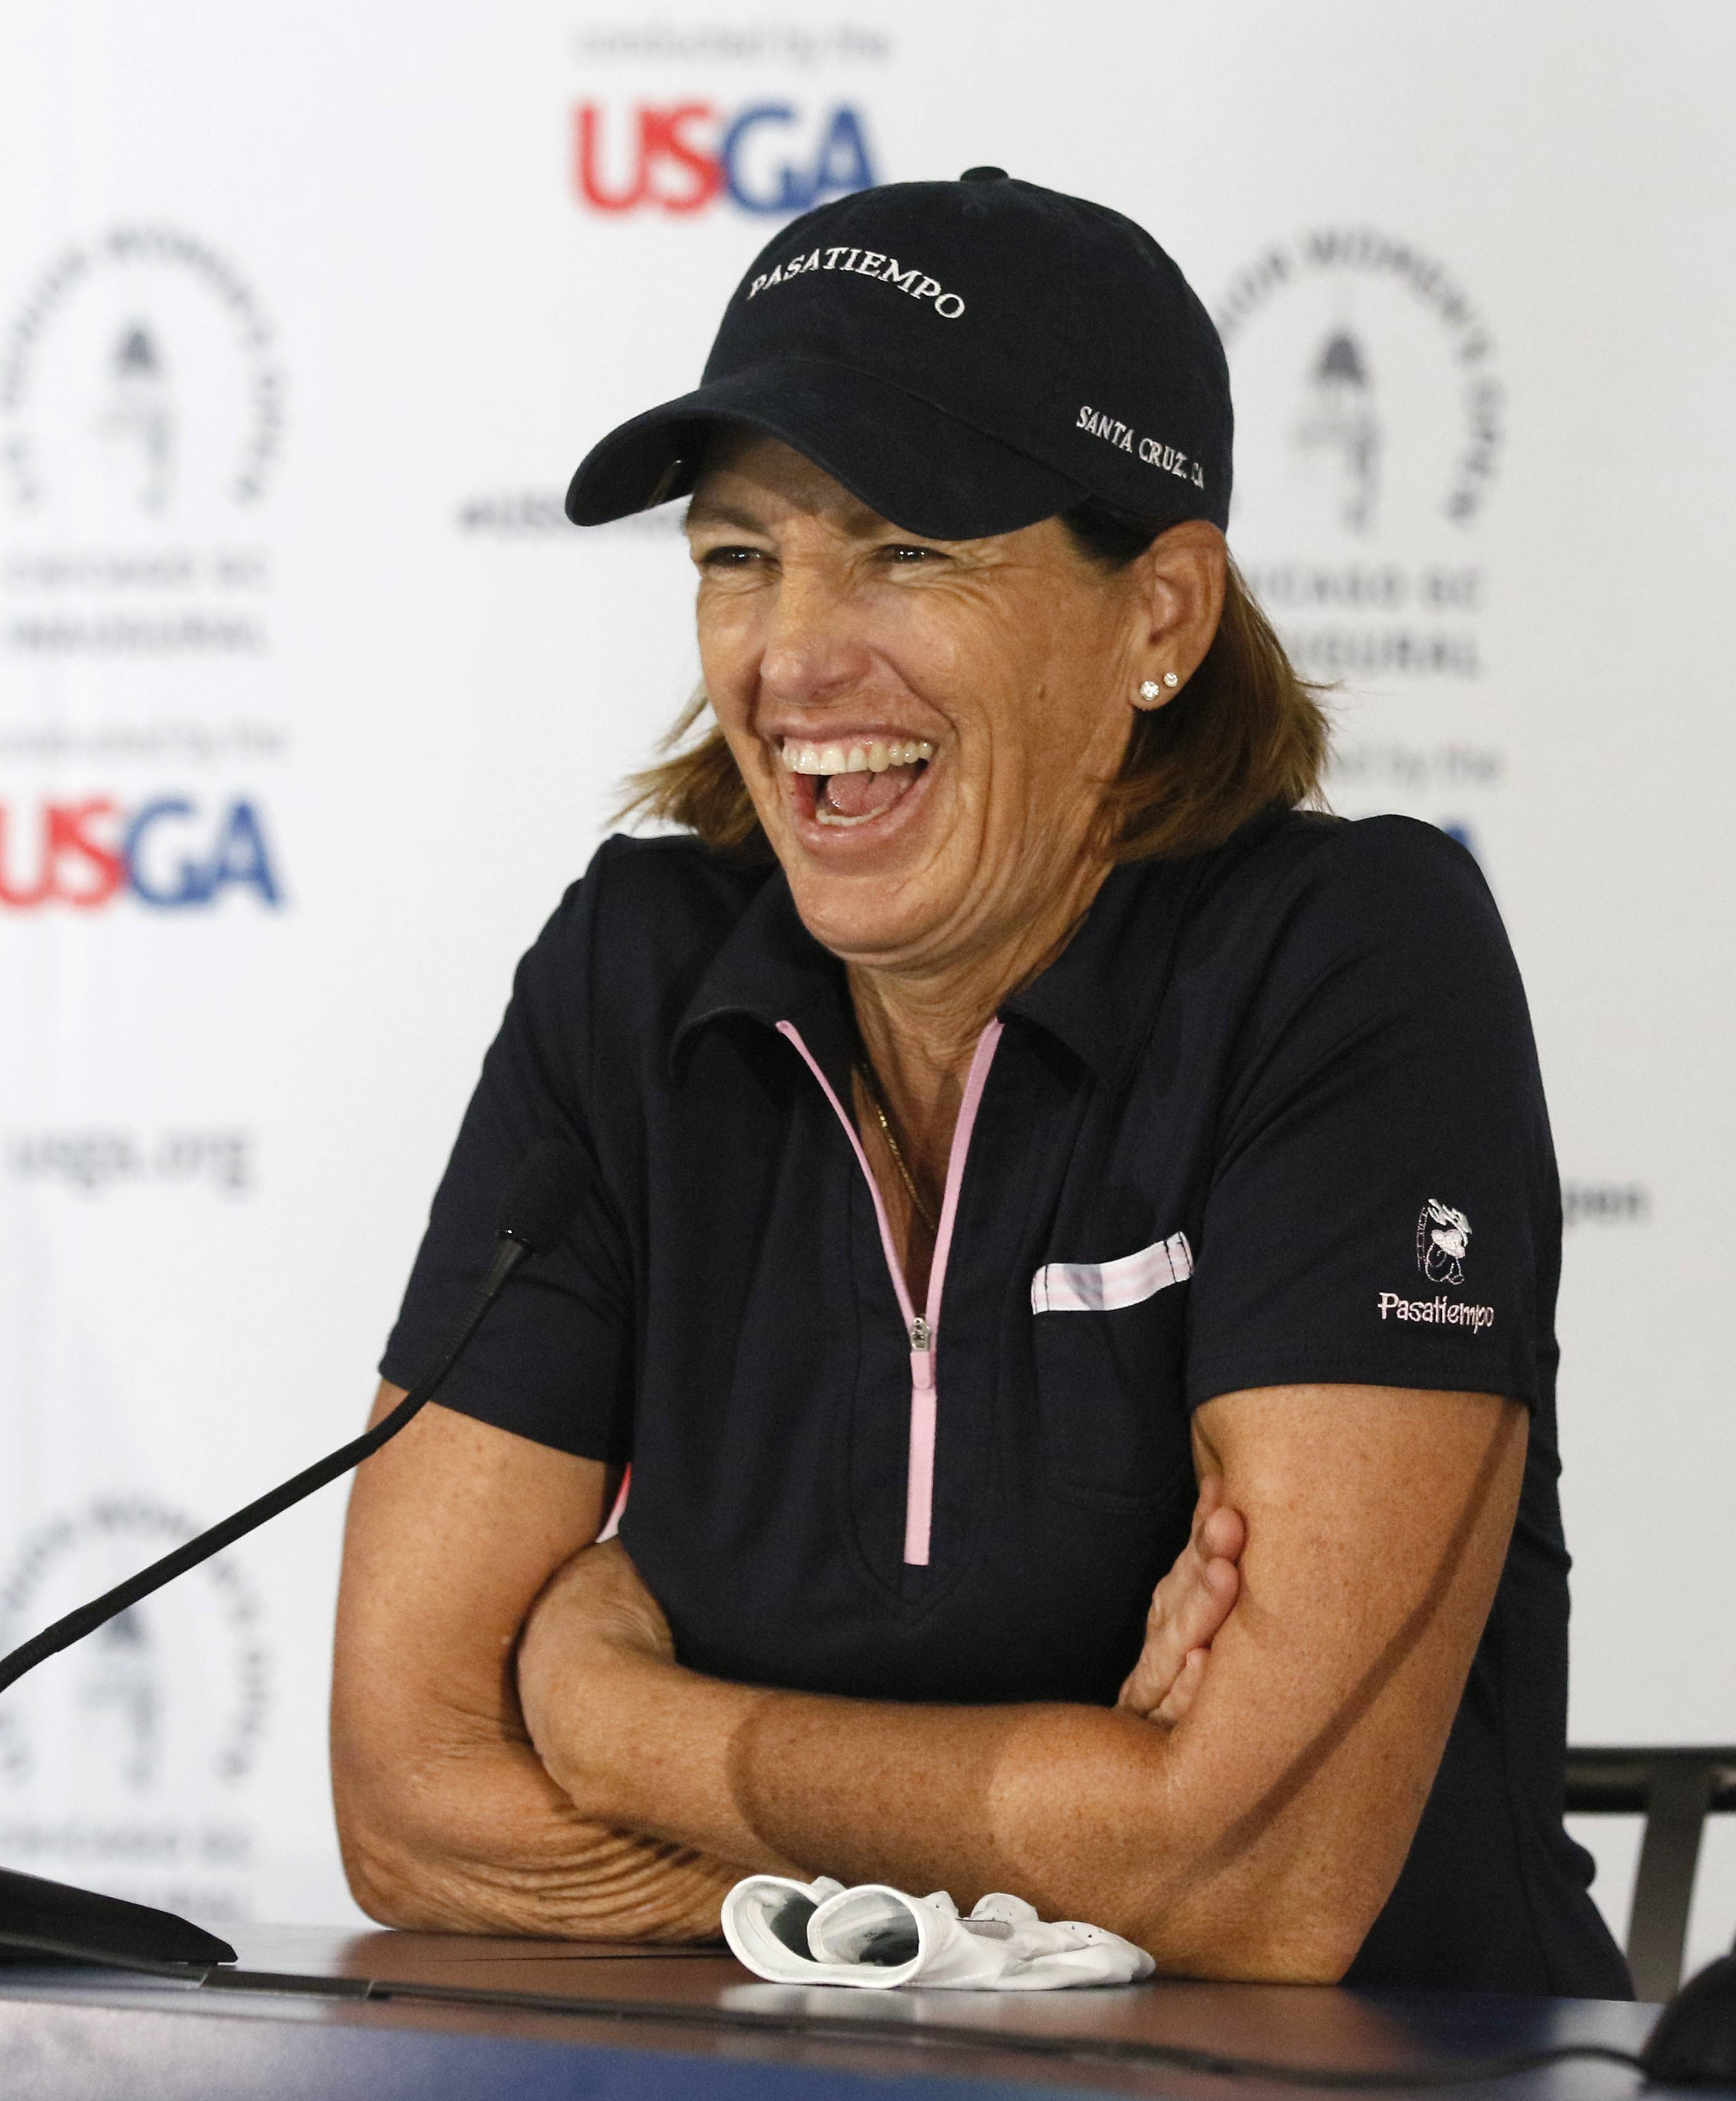 Daniel White/dwhite@dailyherald.comGolfer Juli Inkster talks about the inaugural U.S. Senior Women's Open during a news conference at the Chicago Golf Club in Wheaton.